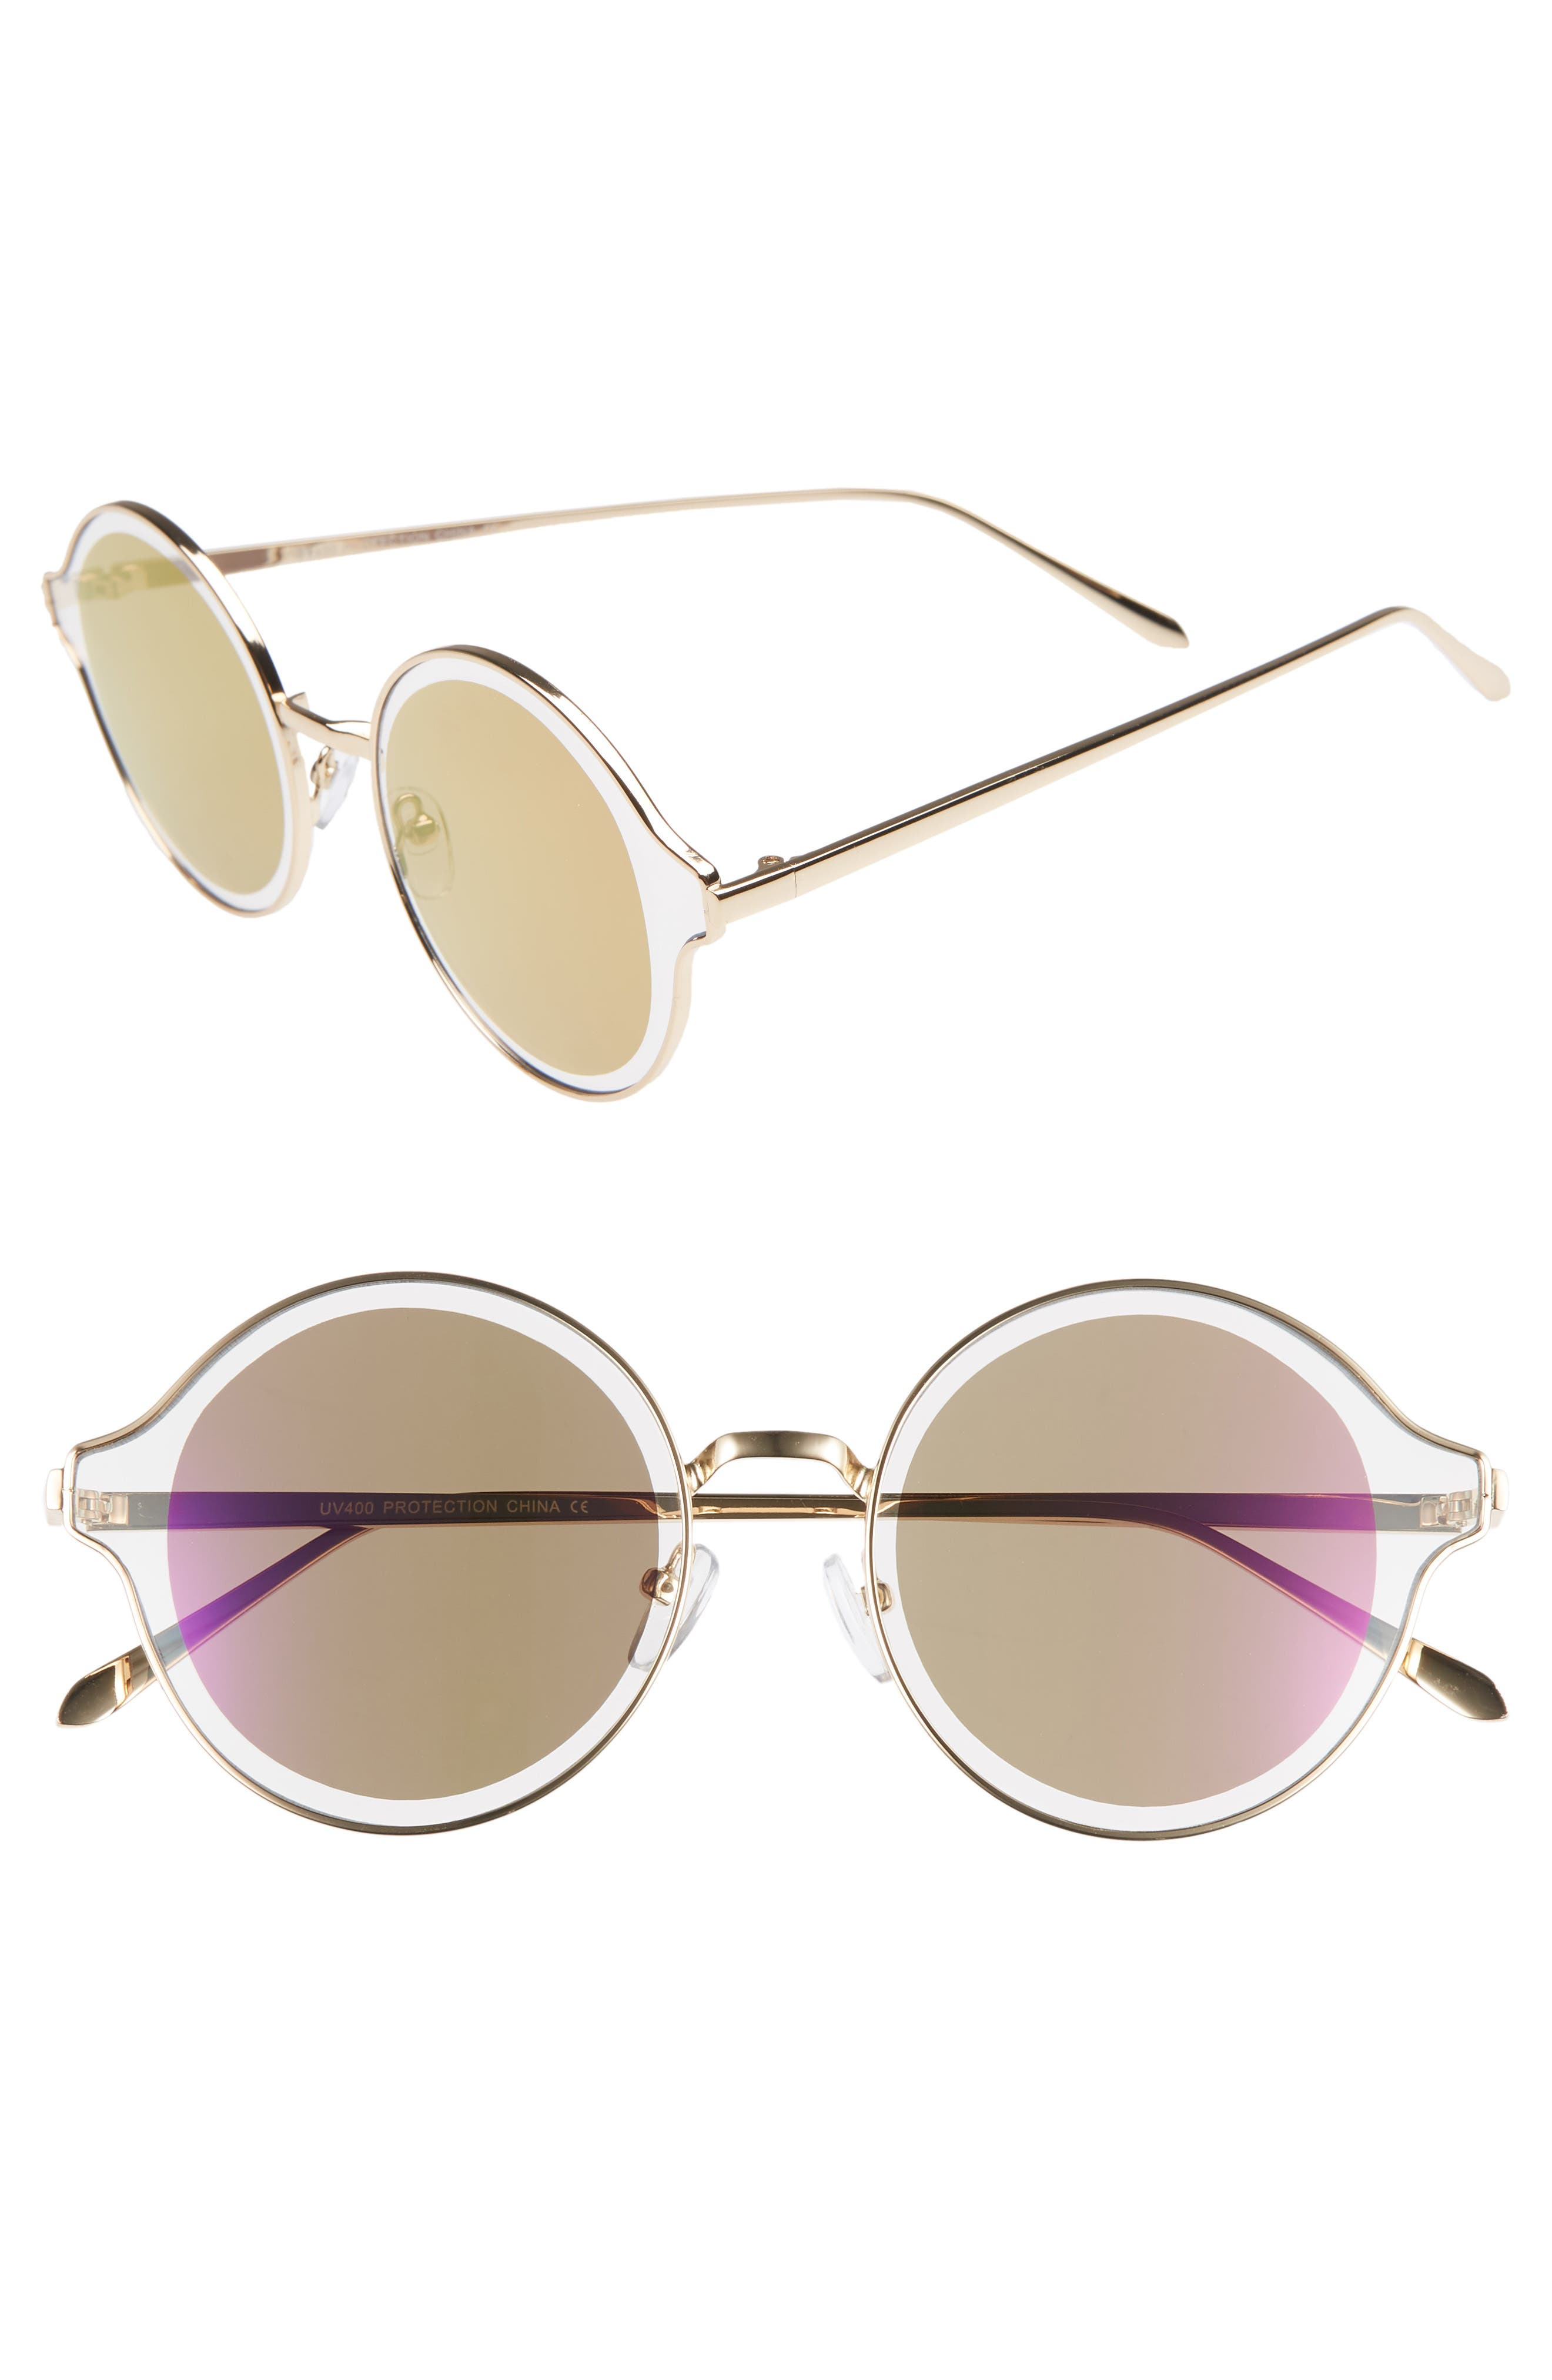 60mm Round Sunglasses,                         Main,                         color, BROWN/ GOLD